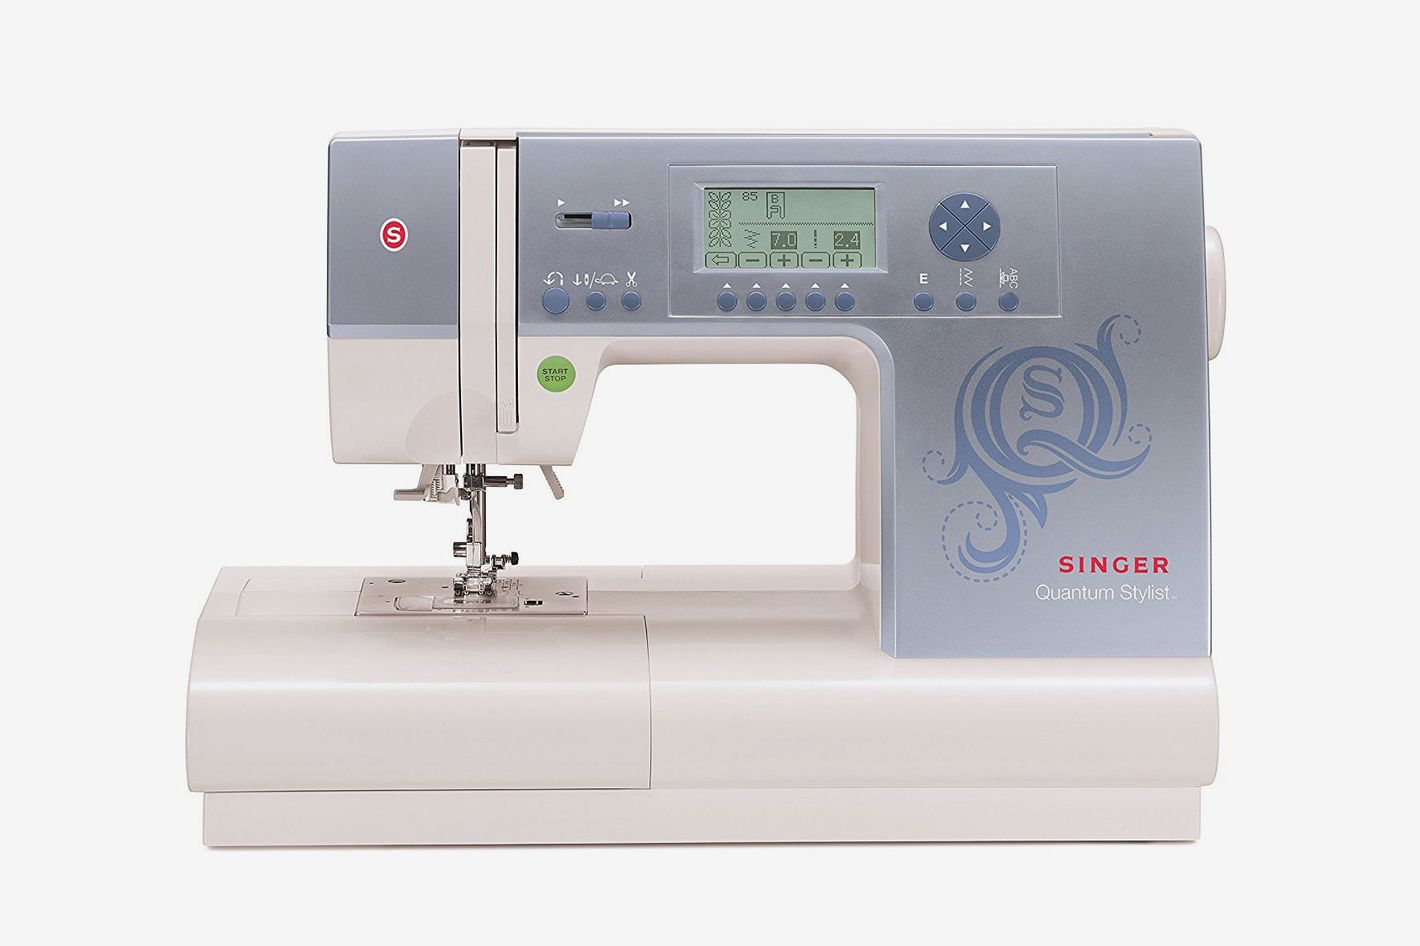 Singer Quantum Stylist 9980 Computerized Portable Sewing Machine